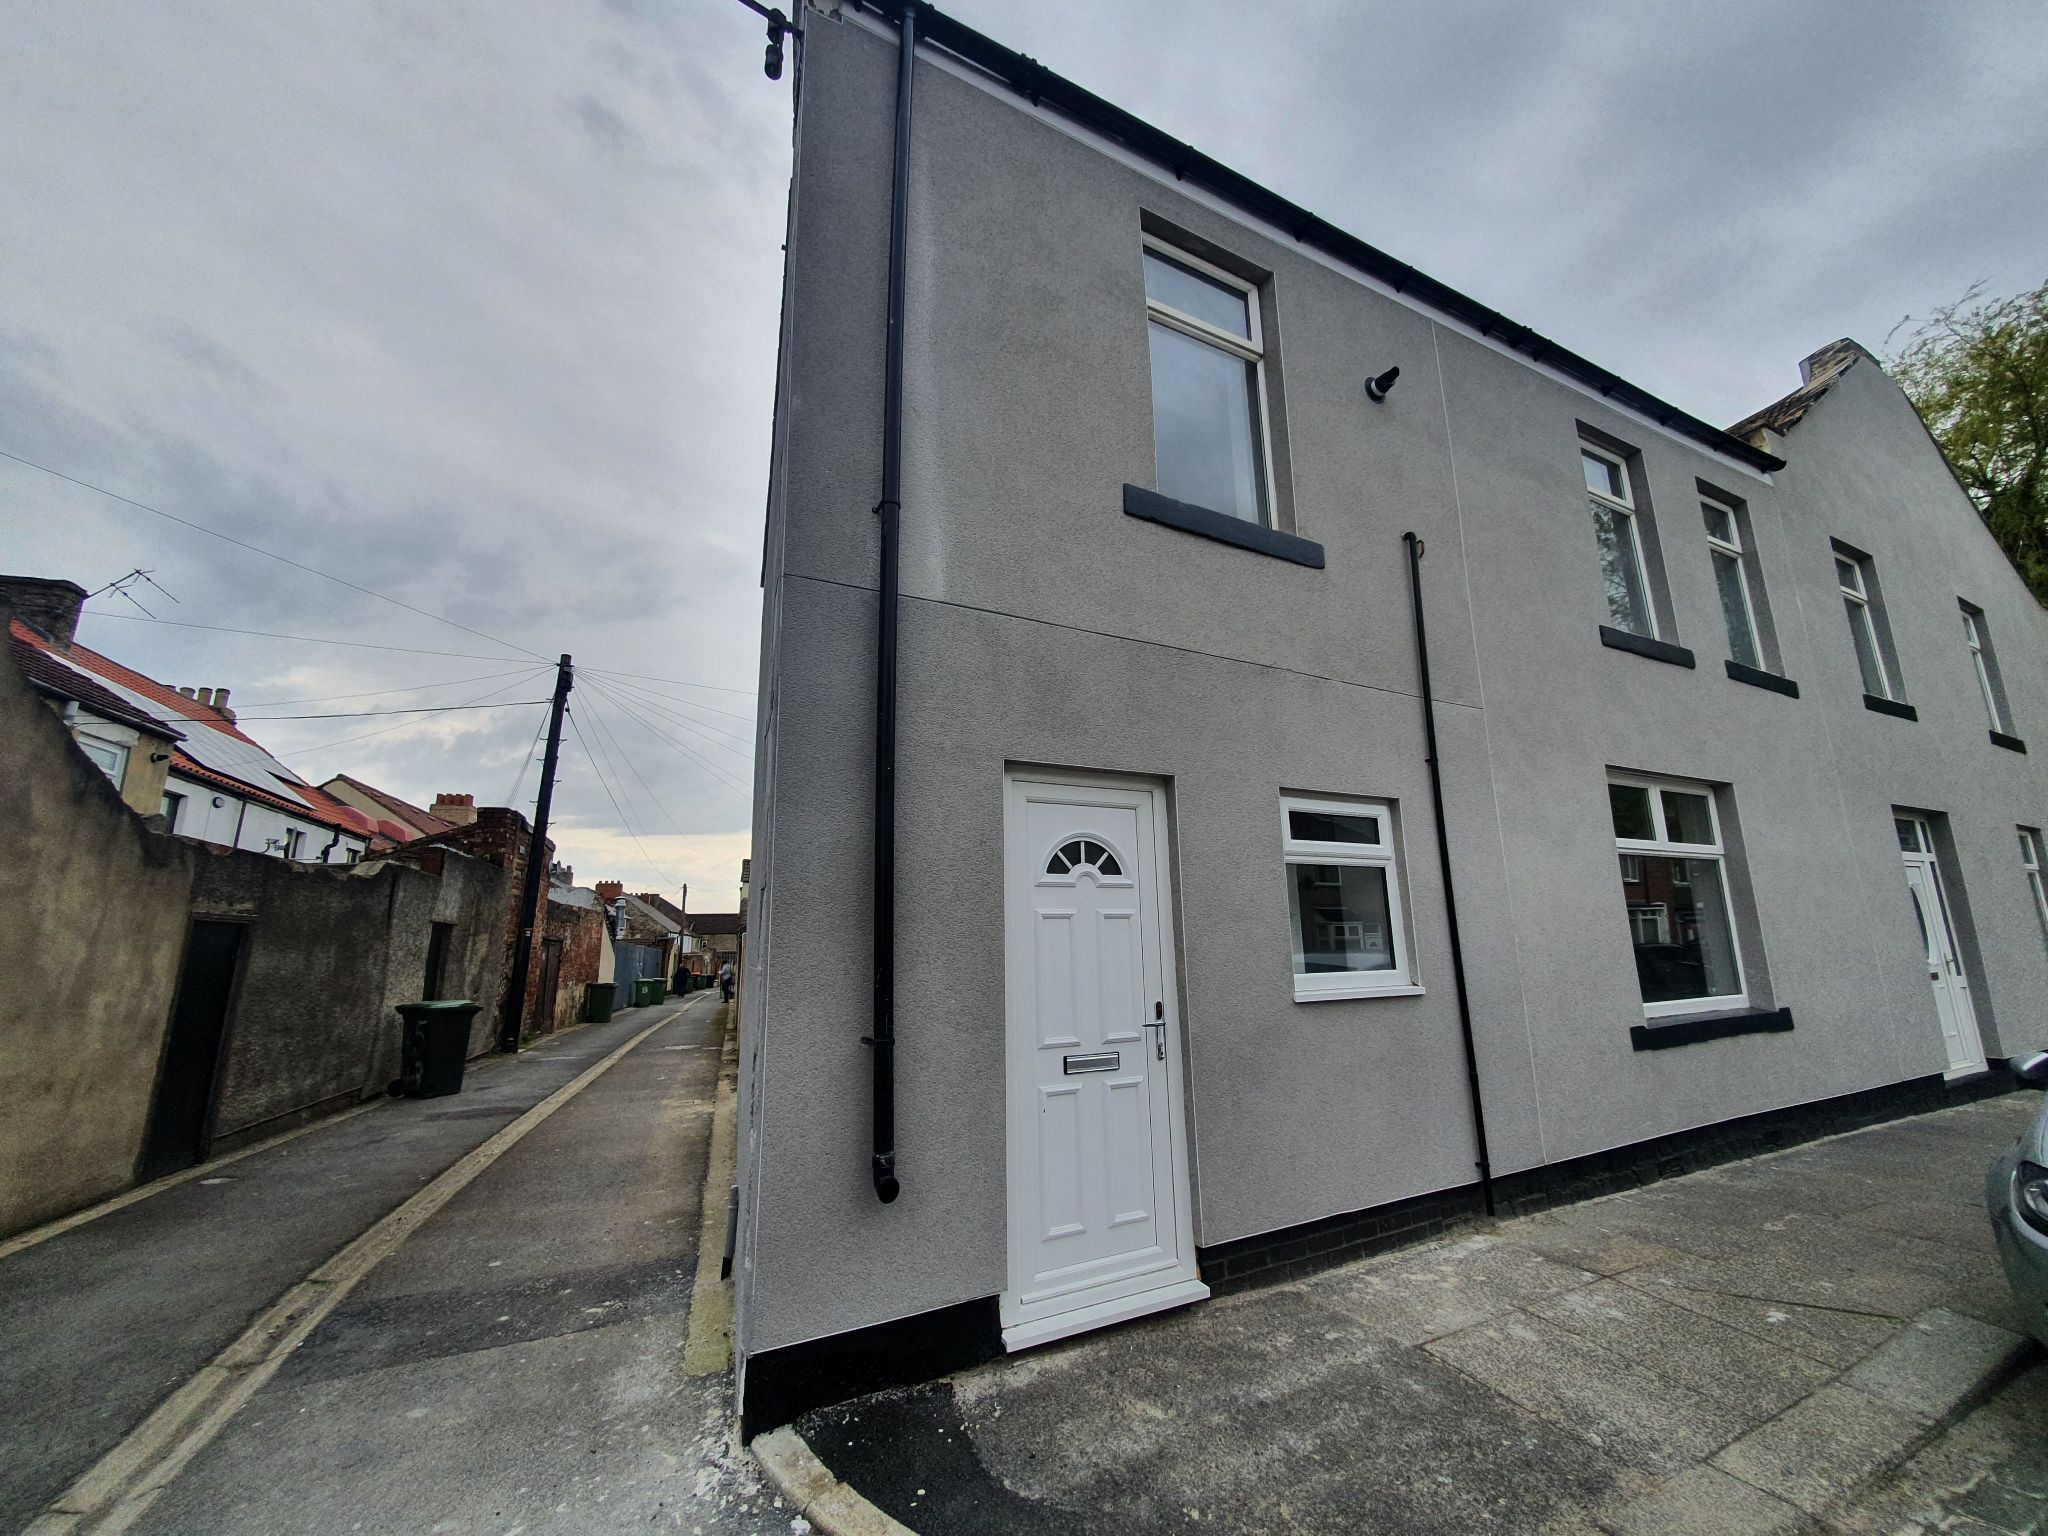 2 bedroom end terraced house For Sale in Shildon - Photograph 1.